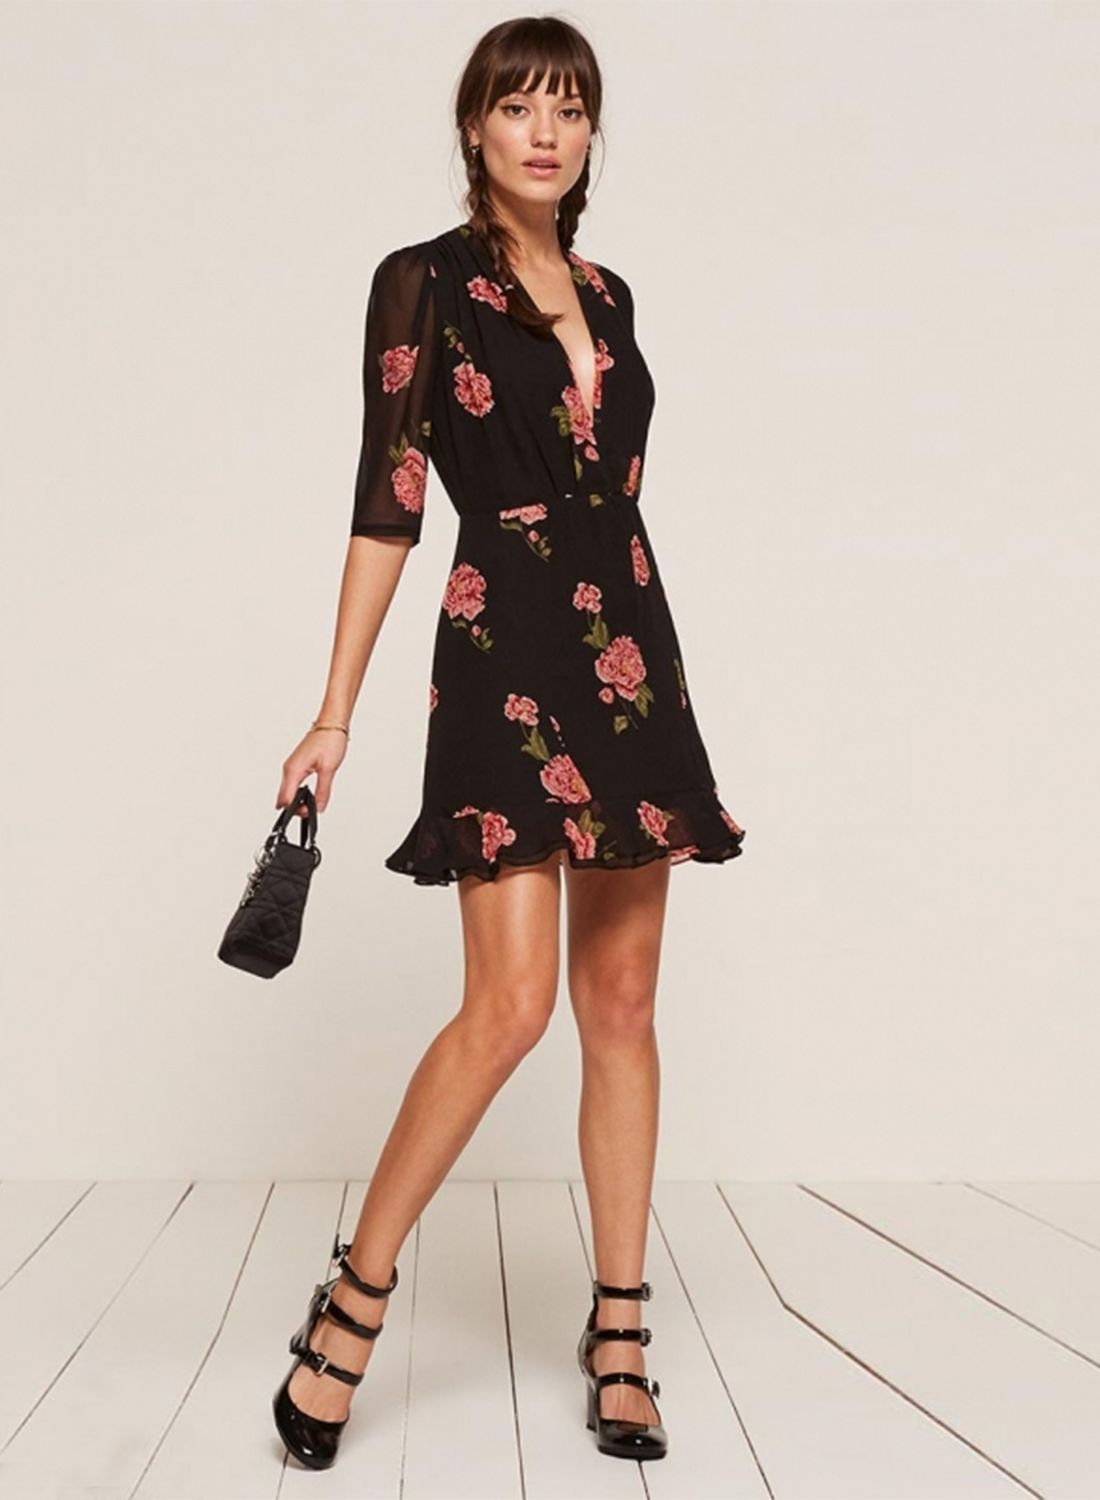 The black color dress is featured v neck, half sleeve, floral print, zipper, flounce panel.